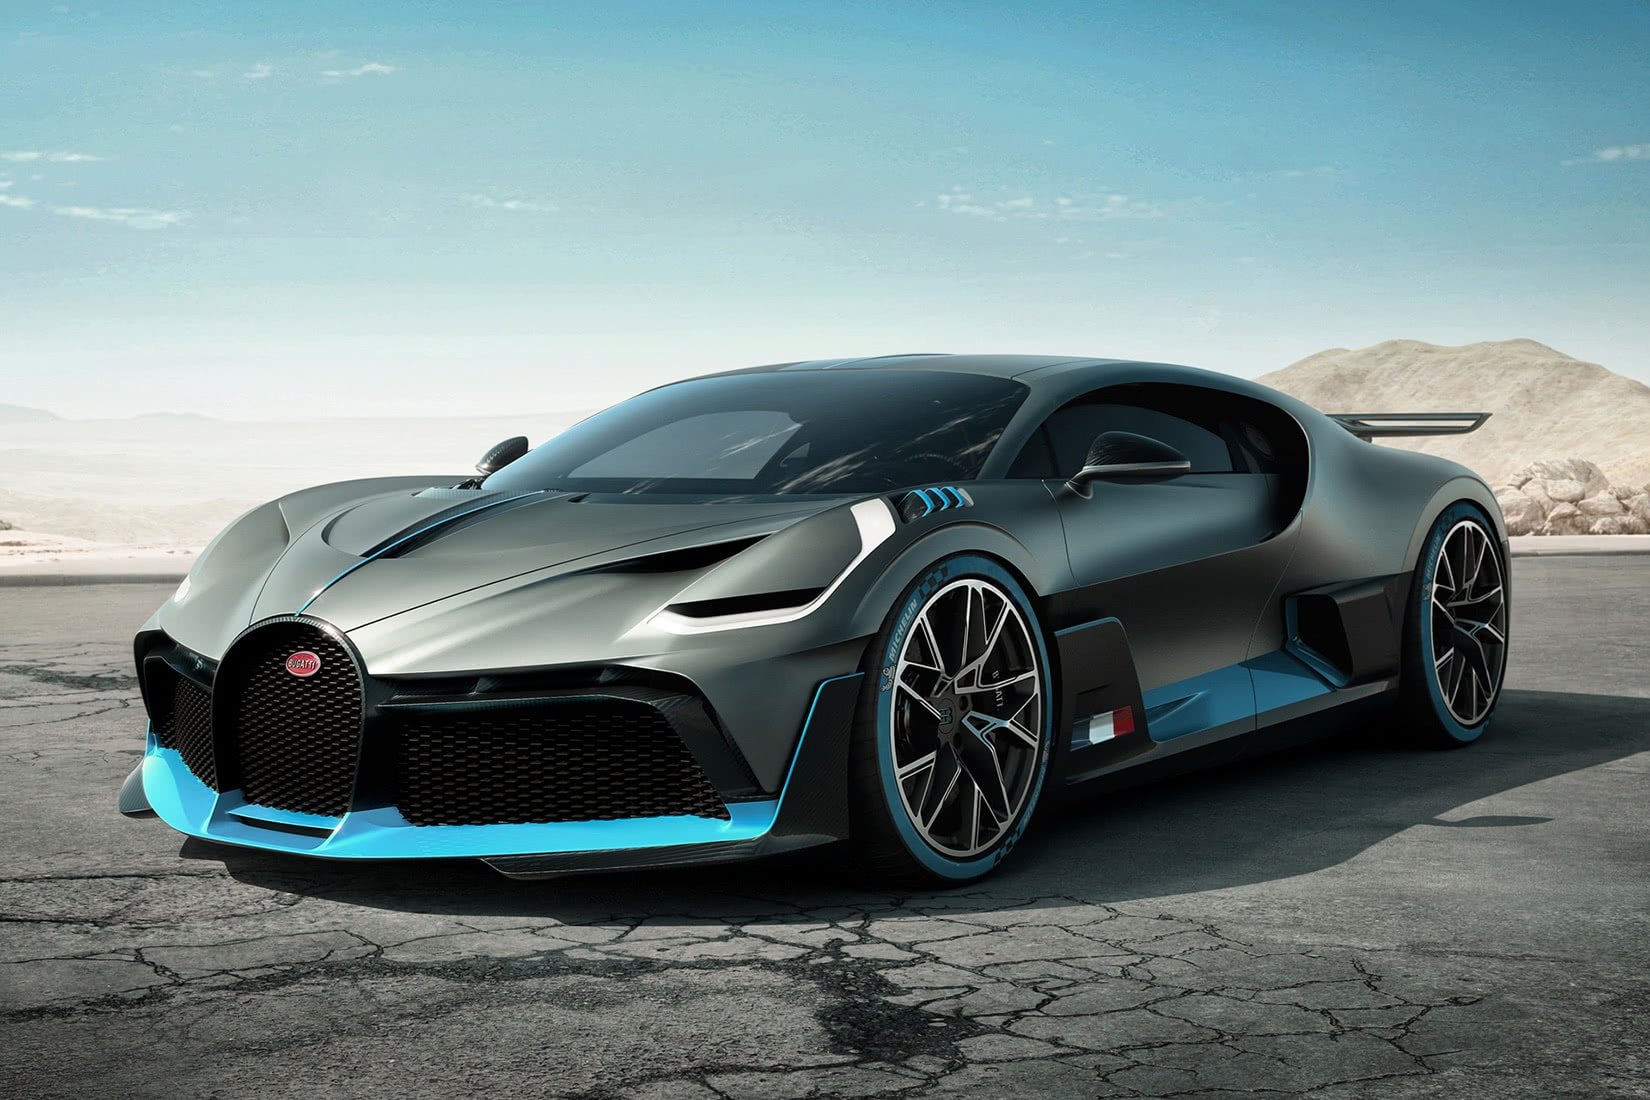 most expensive cars 2021 Bugatti Divo - Luxe Digital